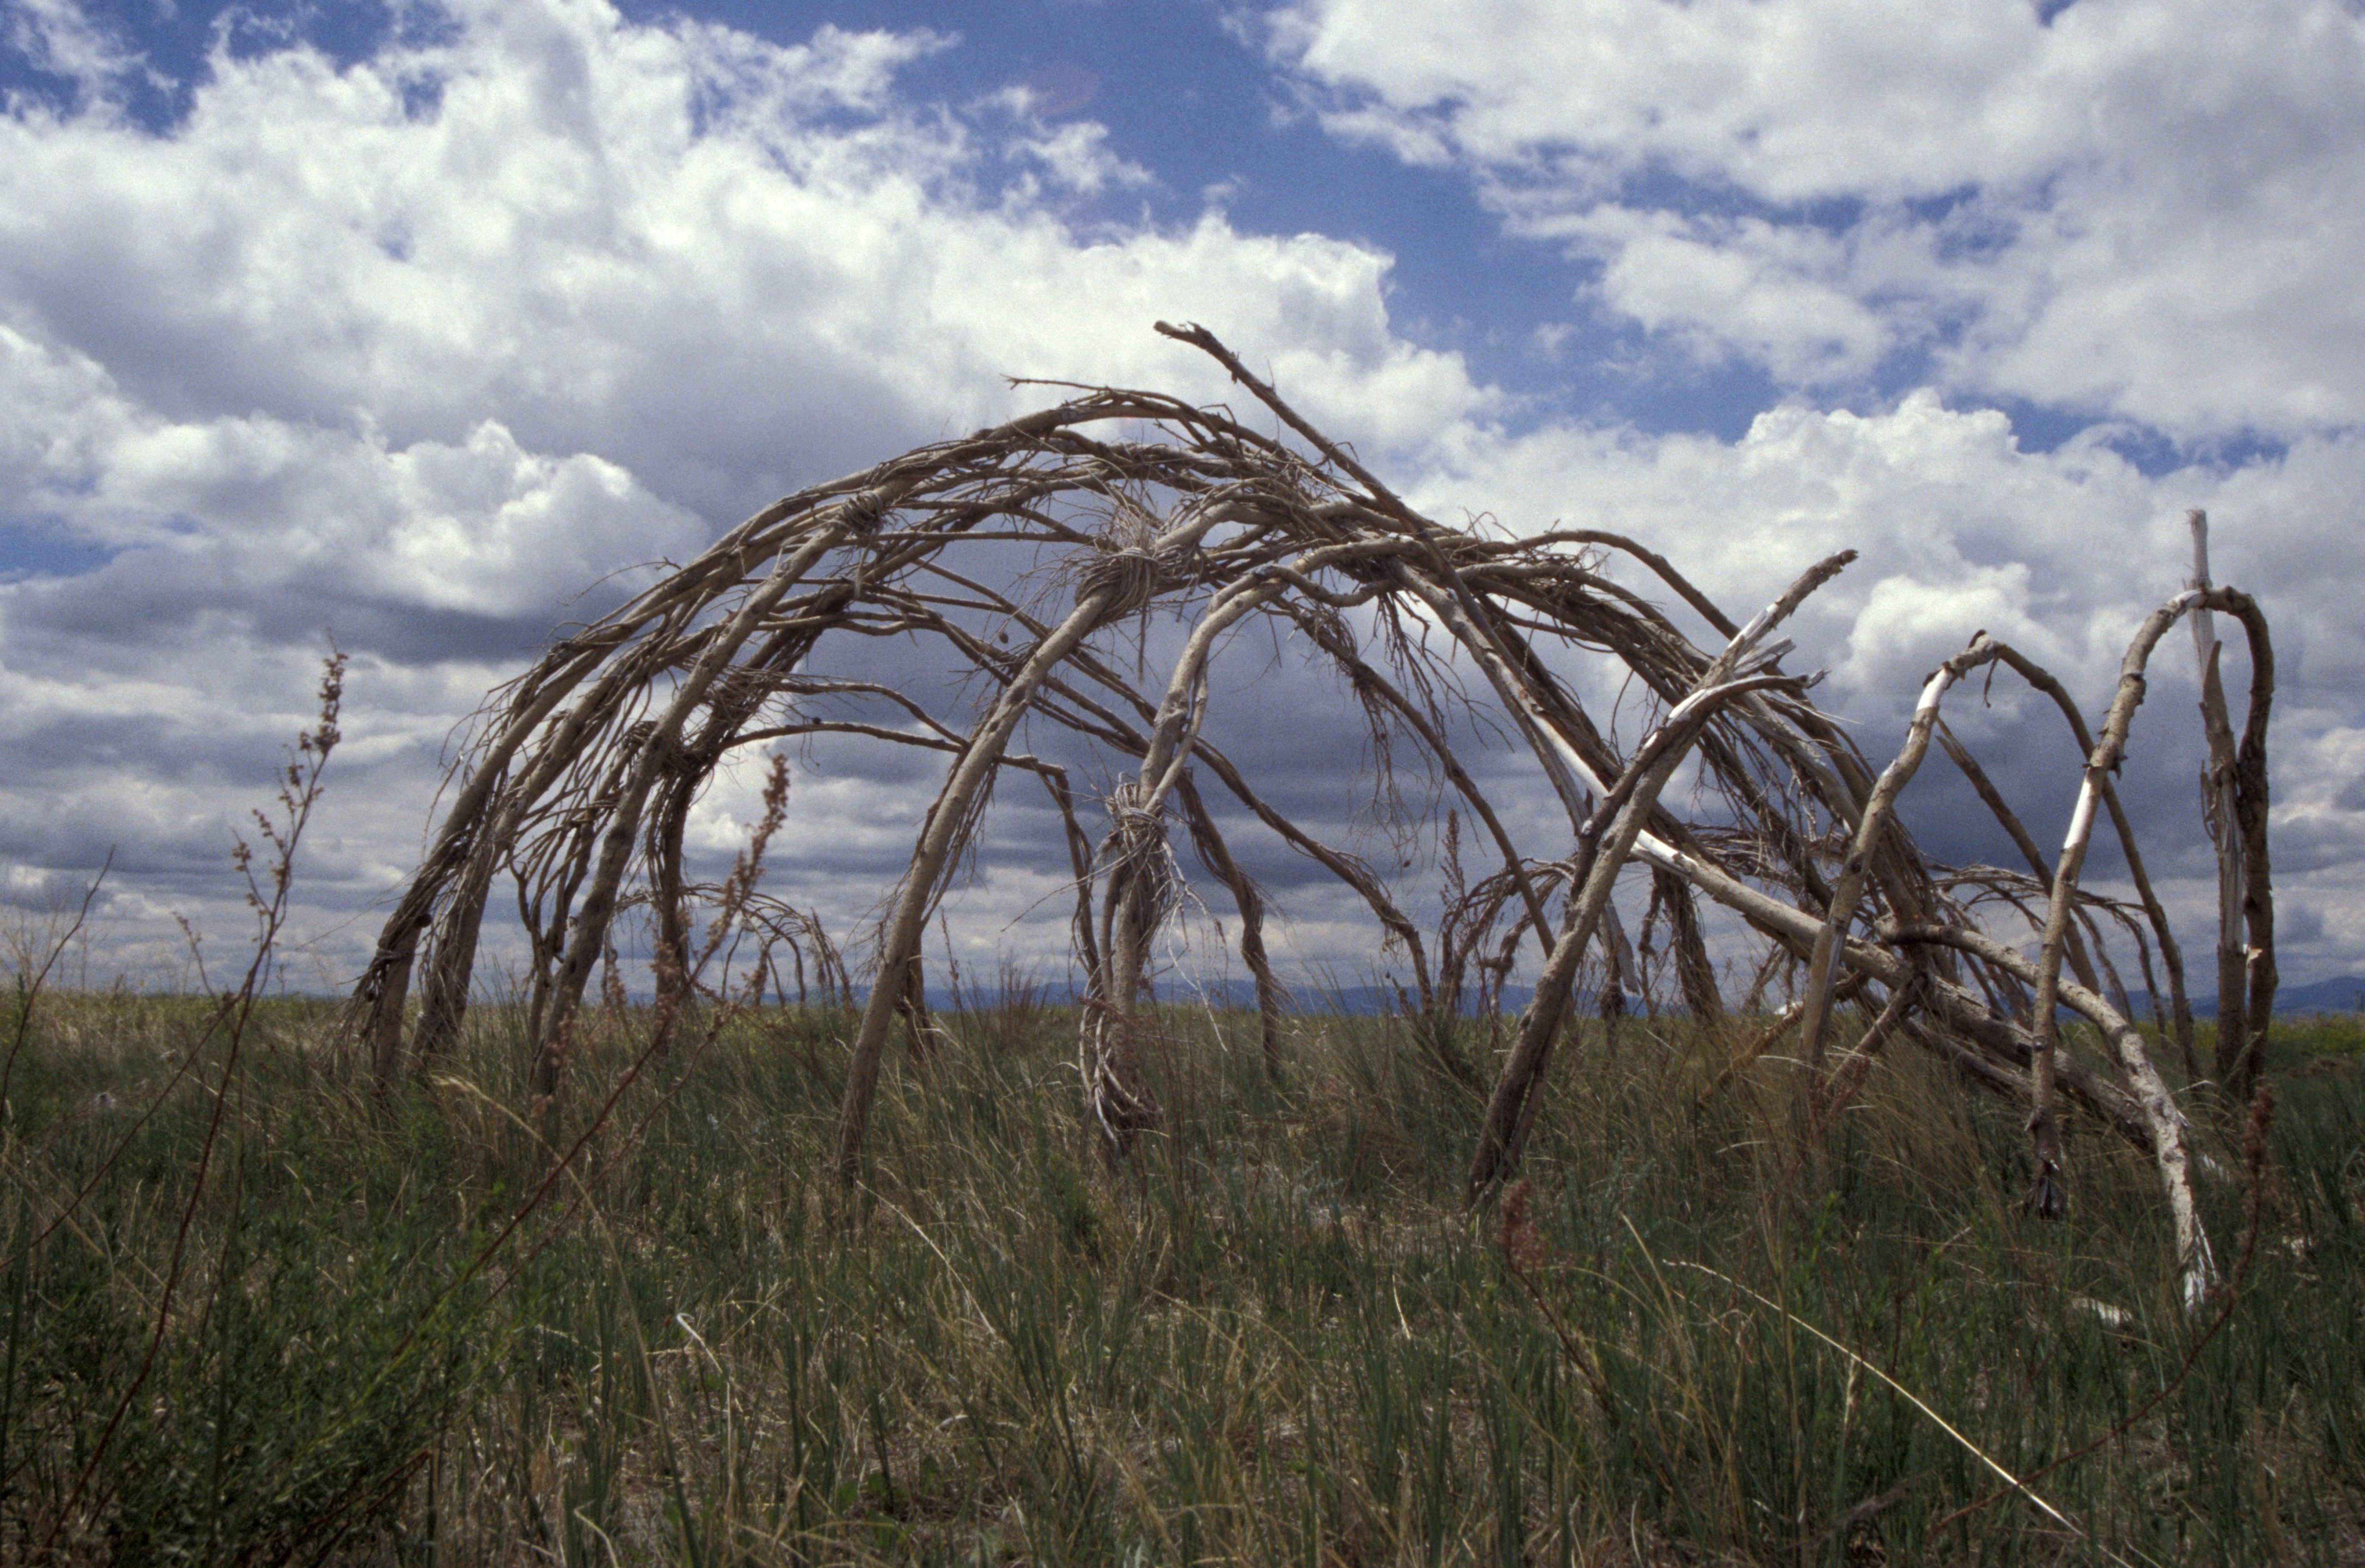 Angel Auto Insurance >> What Is a Native American Sweat Lodge?